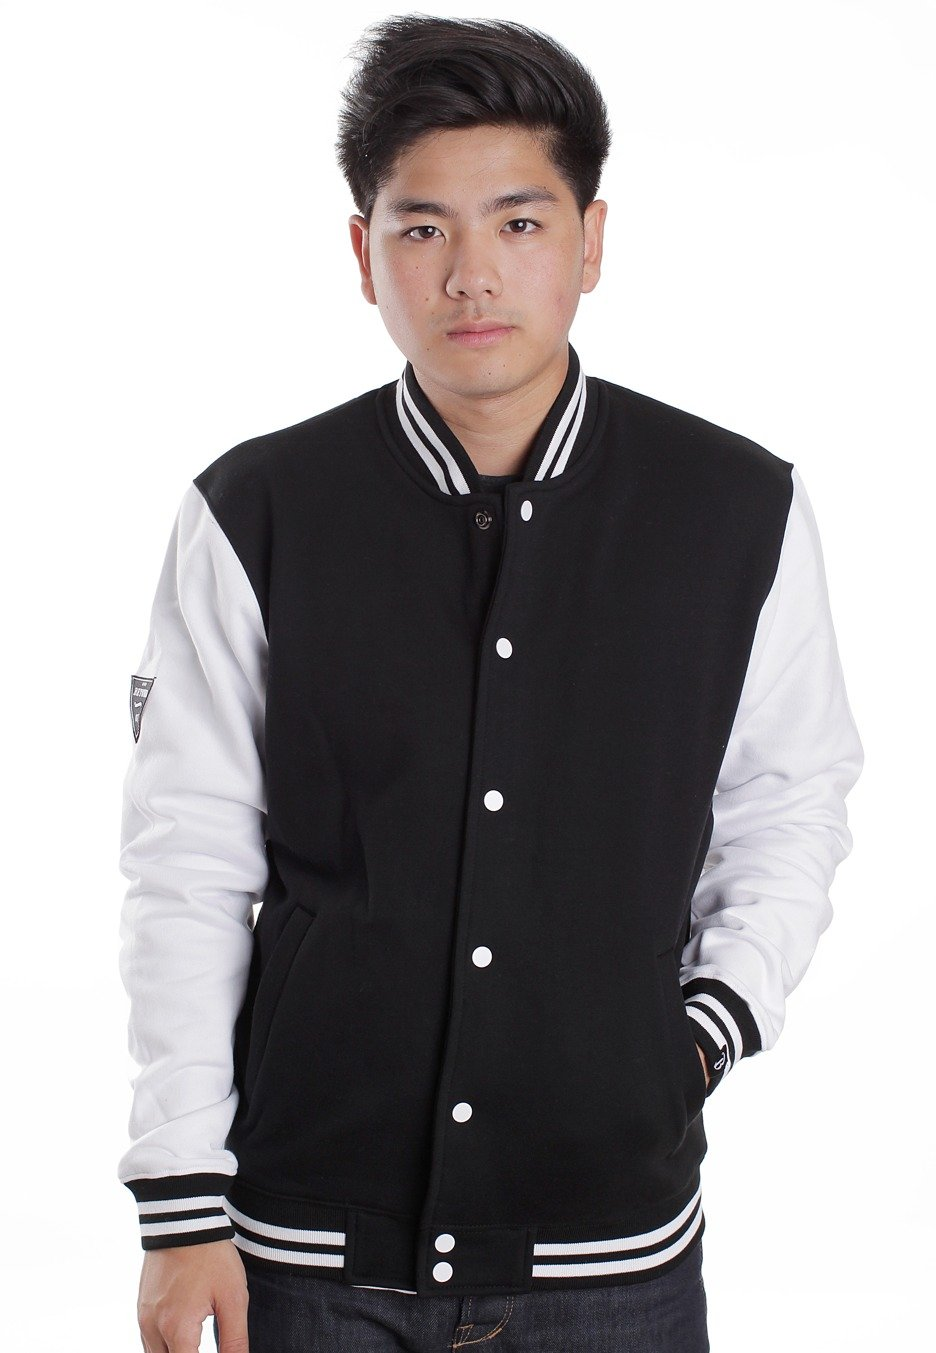 College jacket black and white